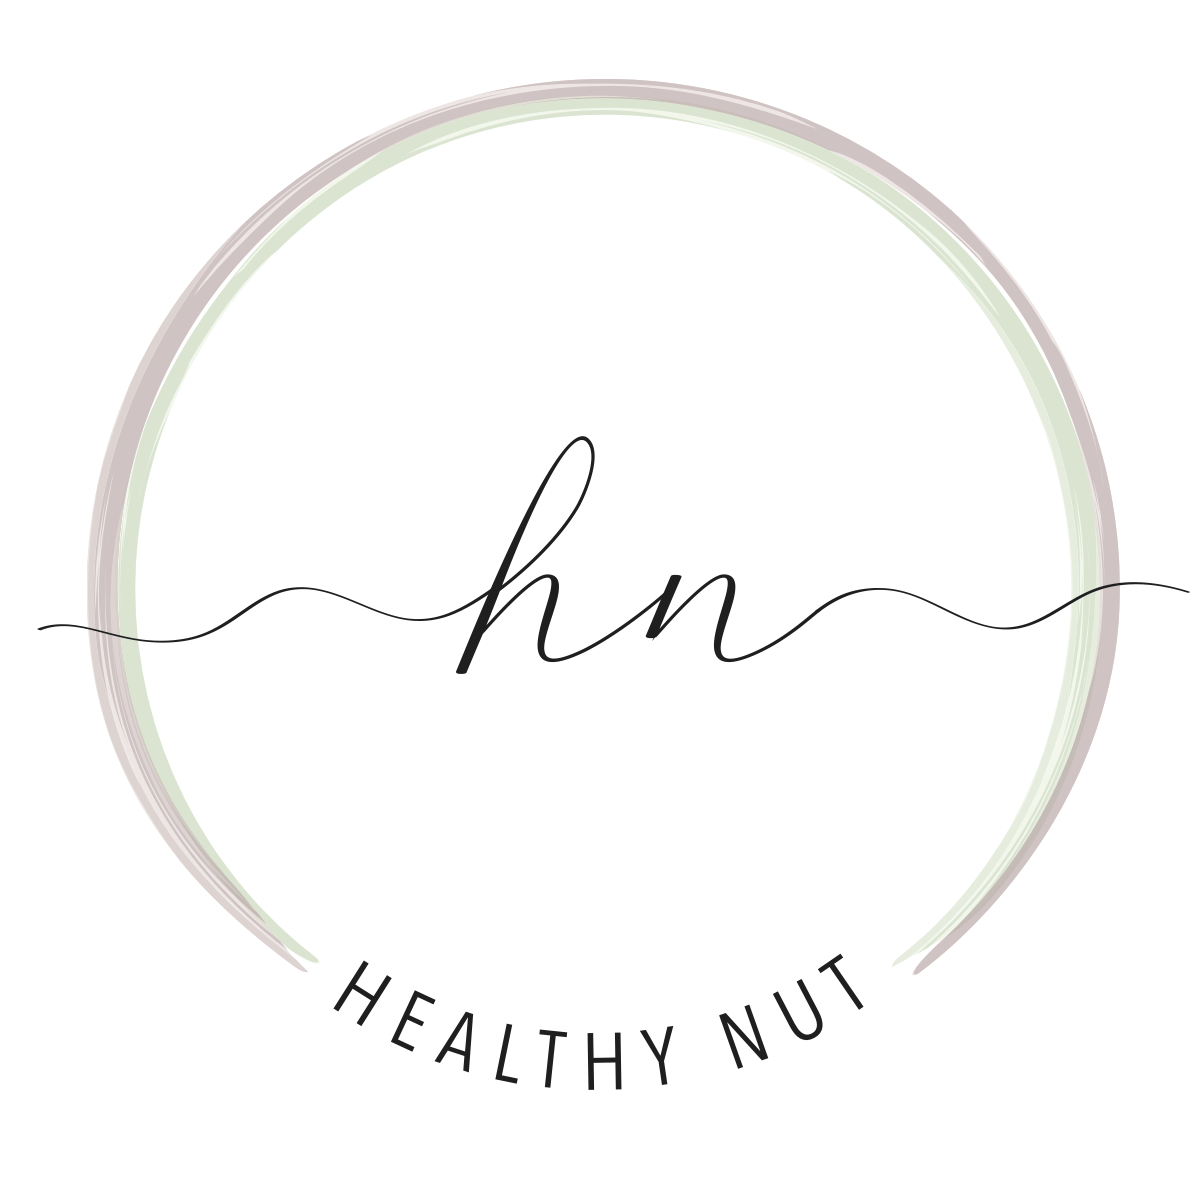 Healthy Nut, Jen   We combine simple, nutritious ingredients into something you'll love eating along with plenty of plant-based protein to keep you strong.